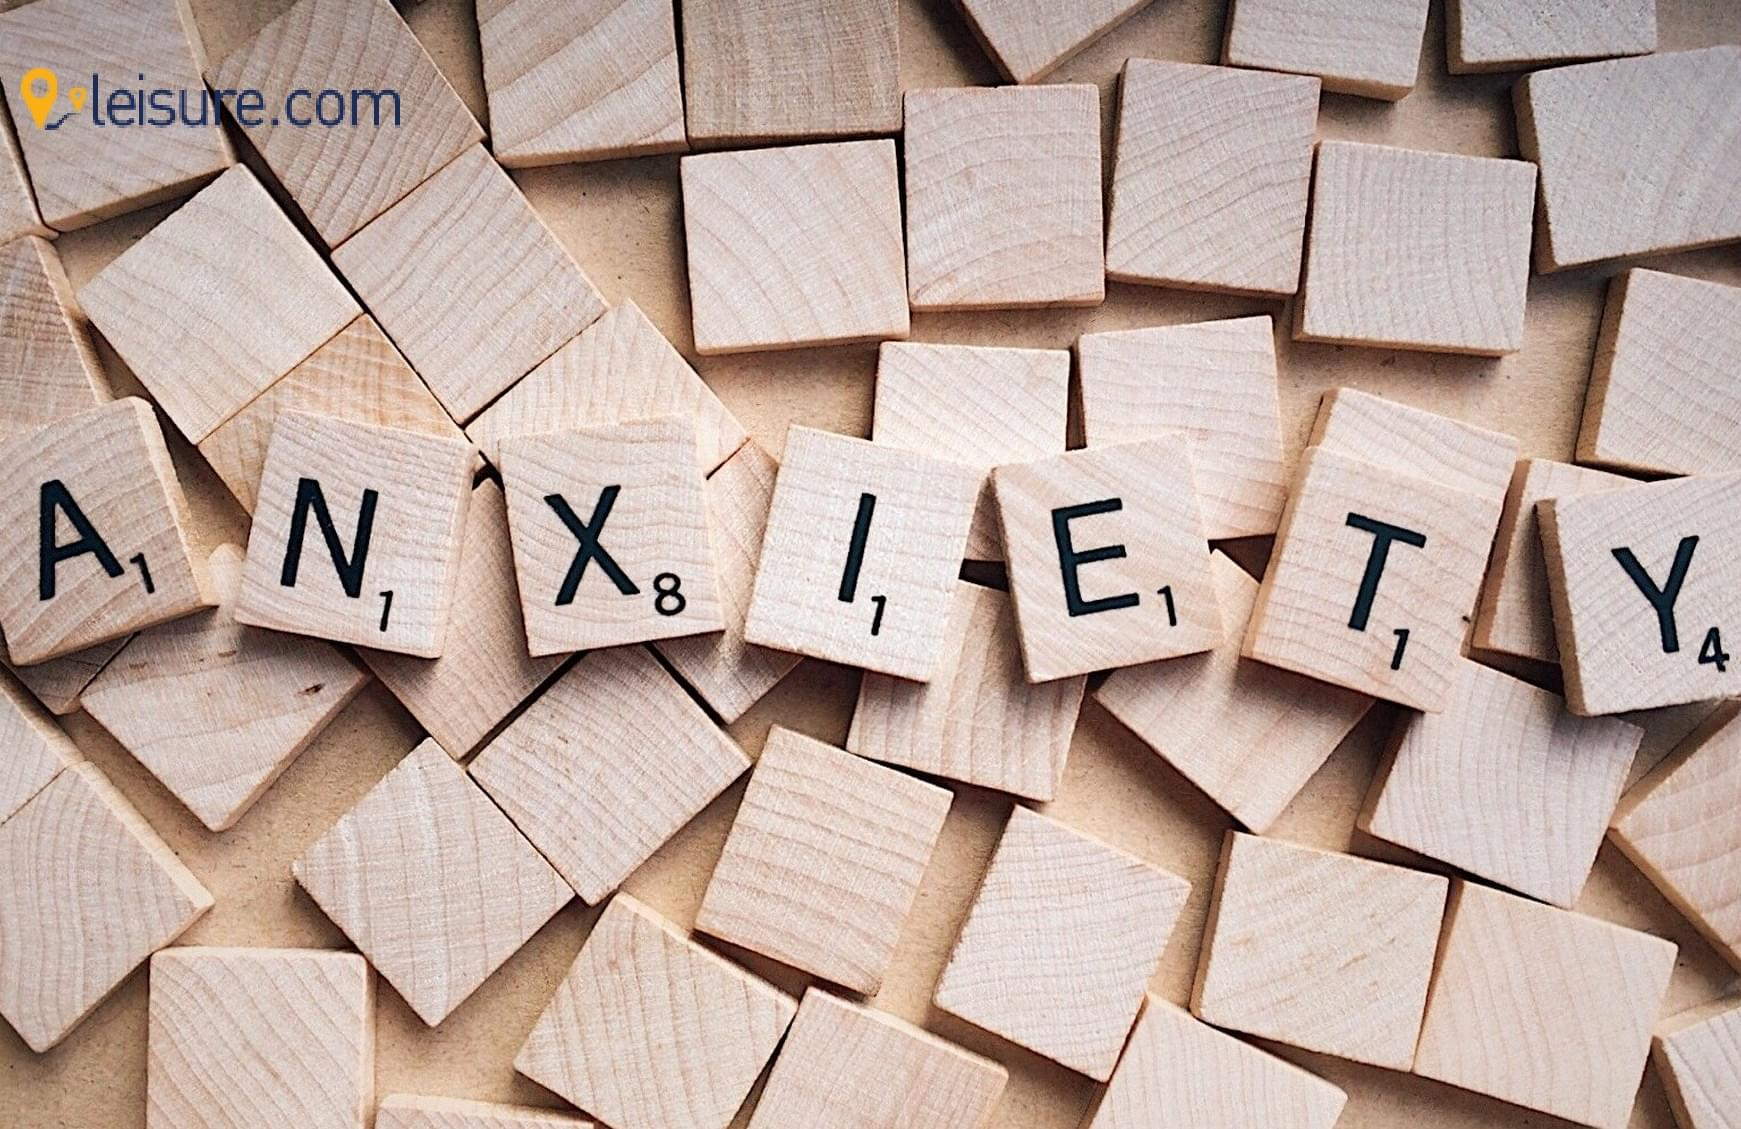 Top Ways Virtual Trip Can Reduce Anxiety